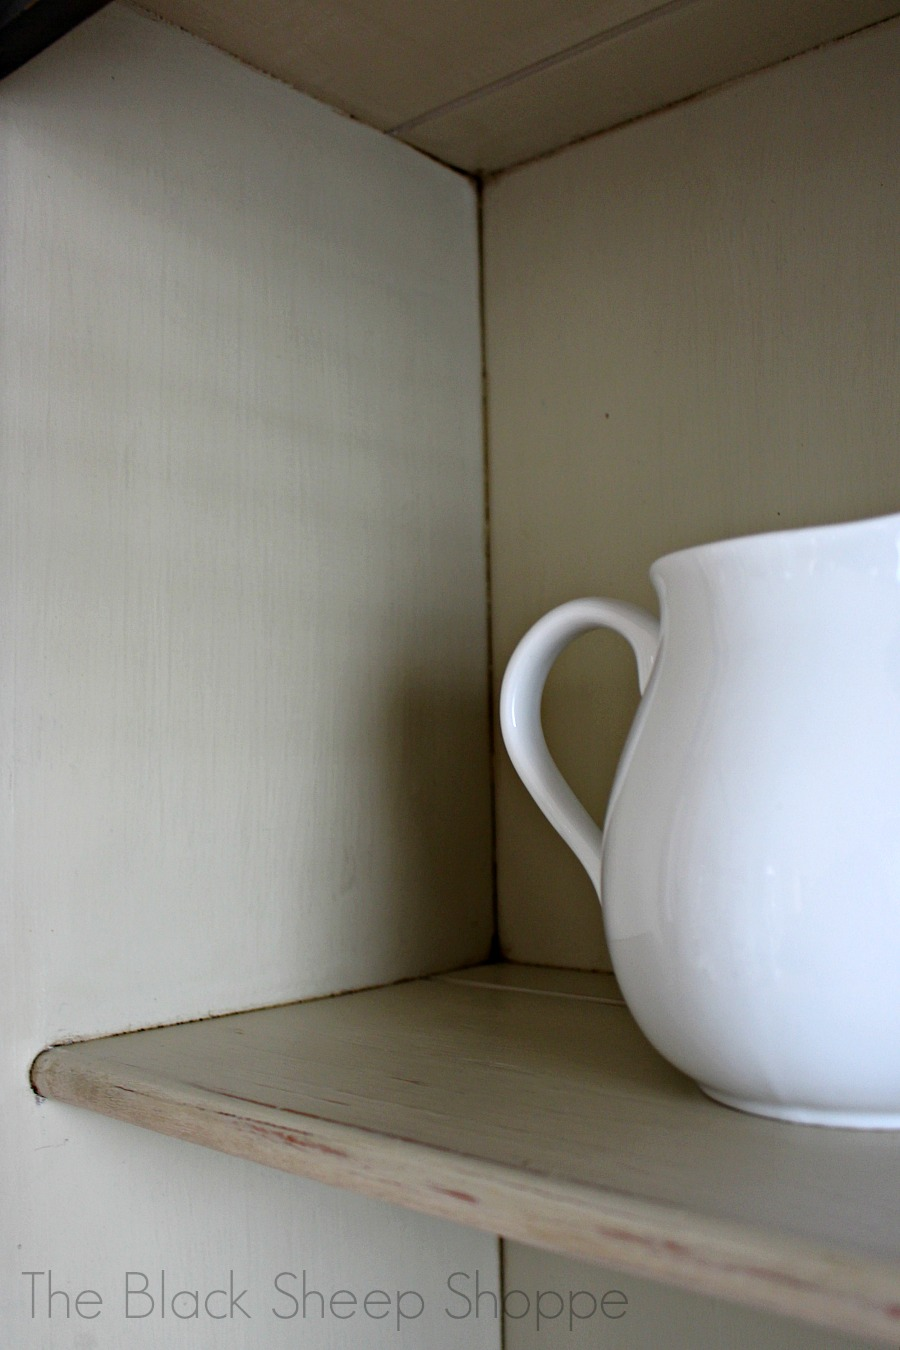 White pitcher against Country Grey interior